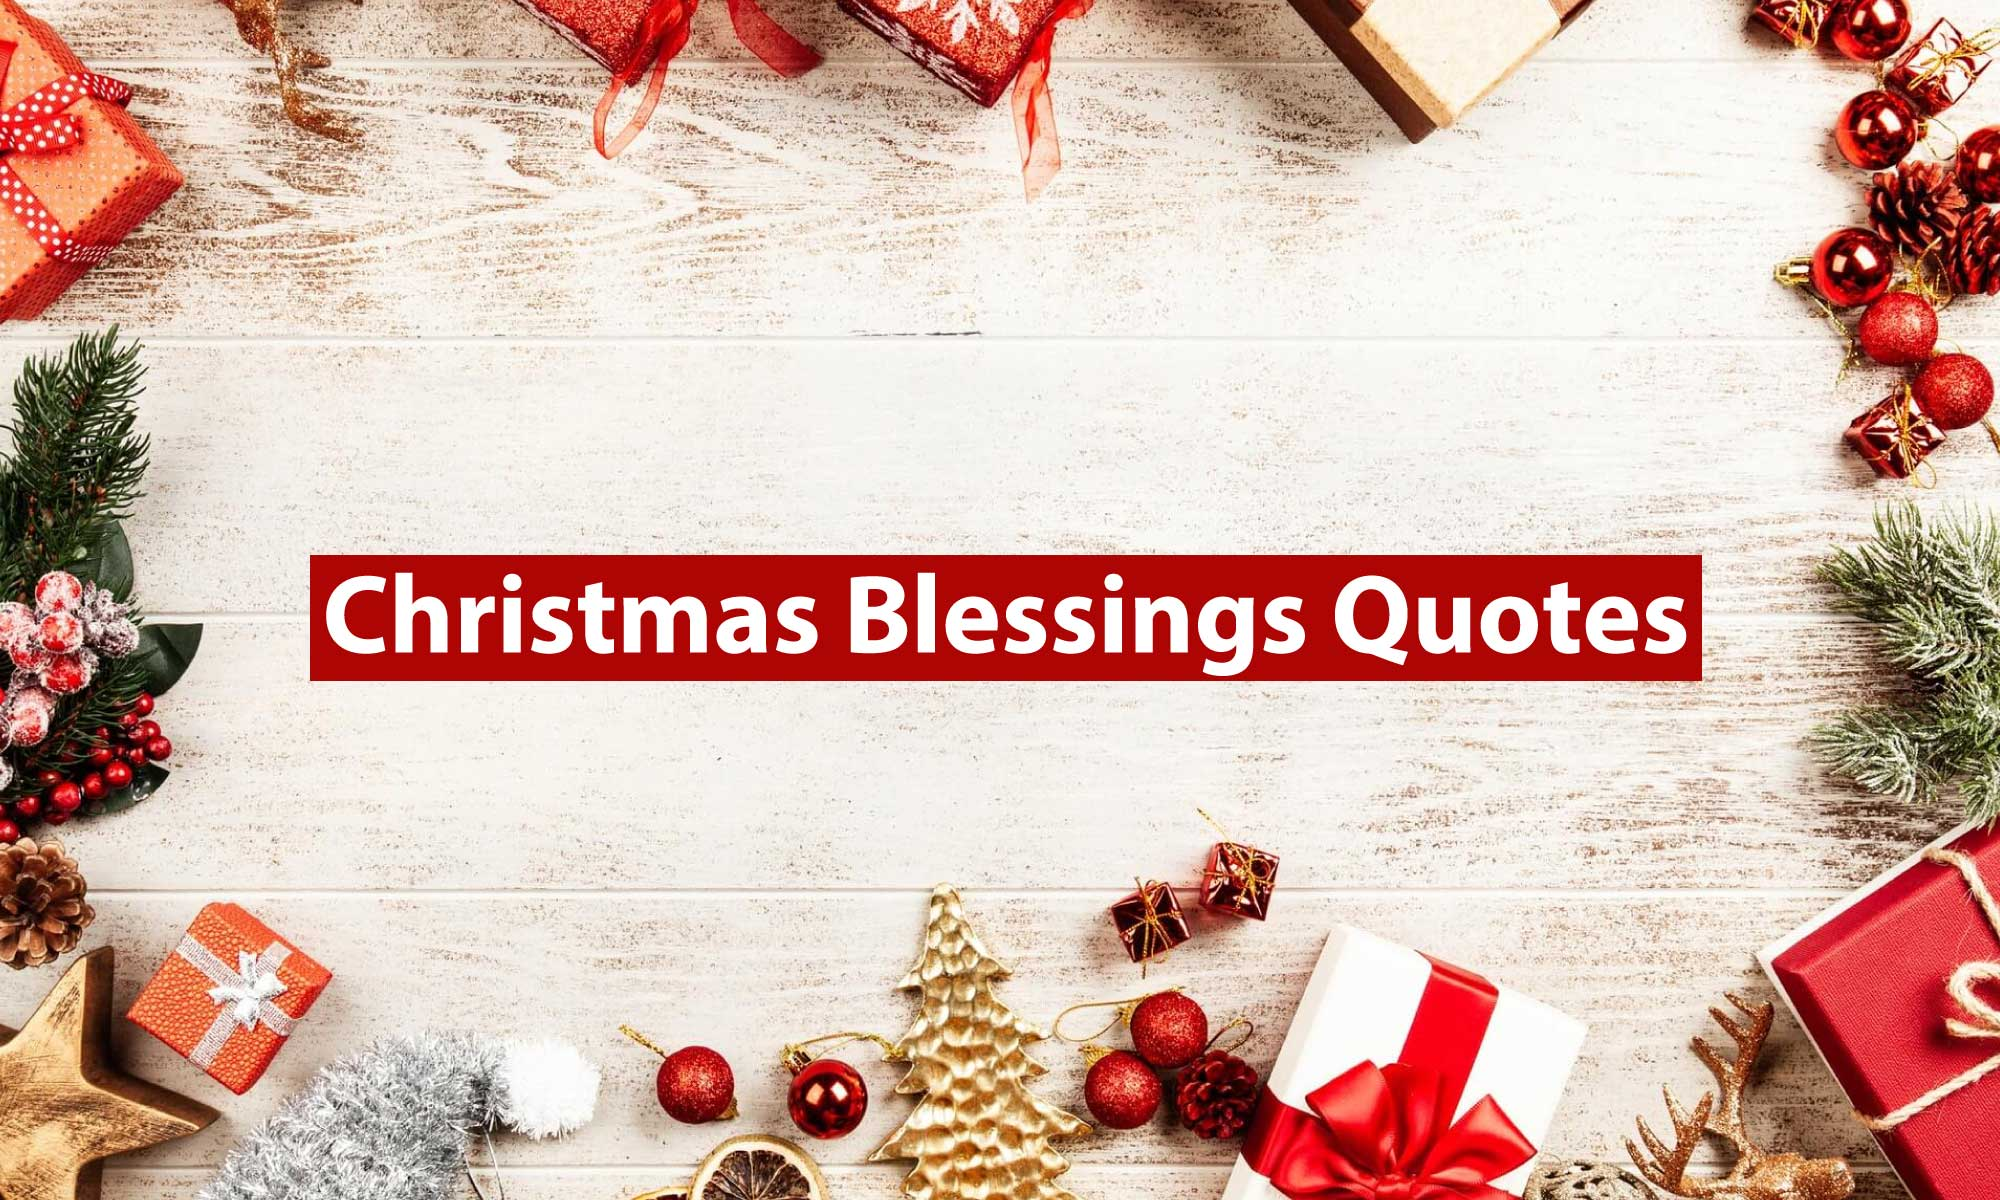 Christmas-Blessings-Quotes